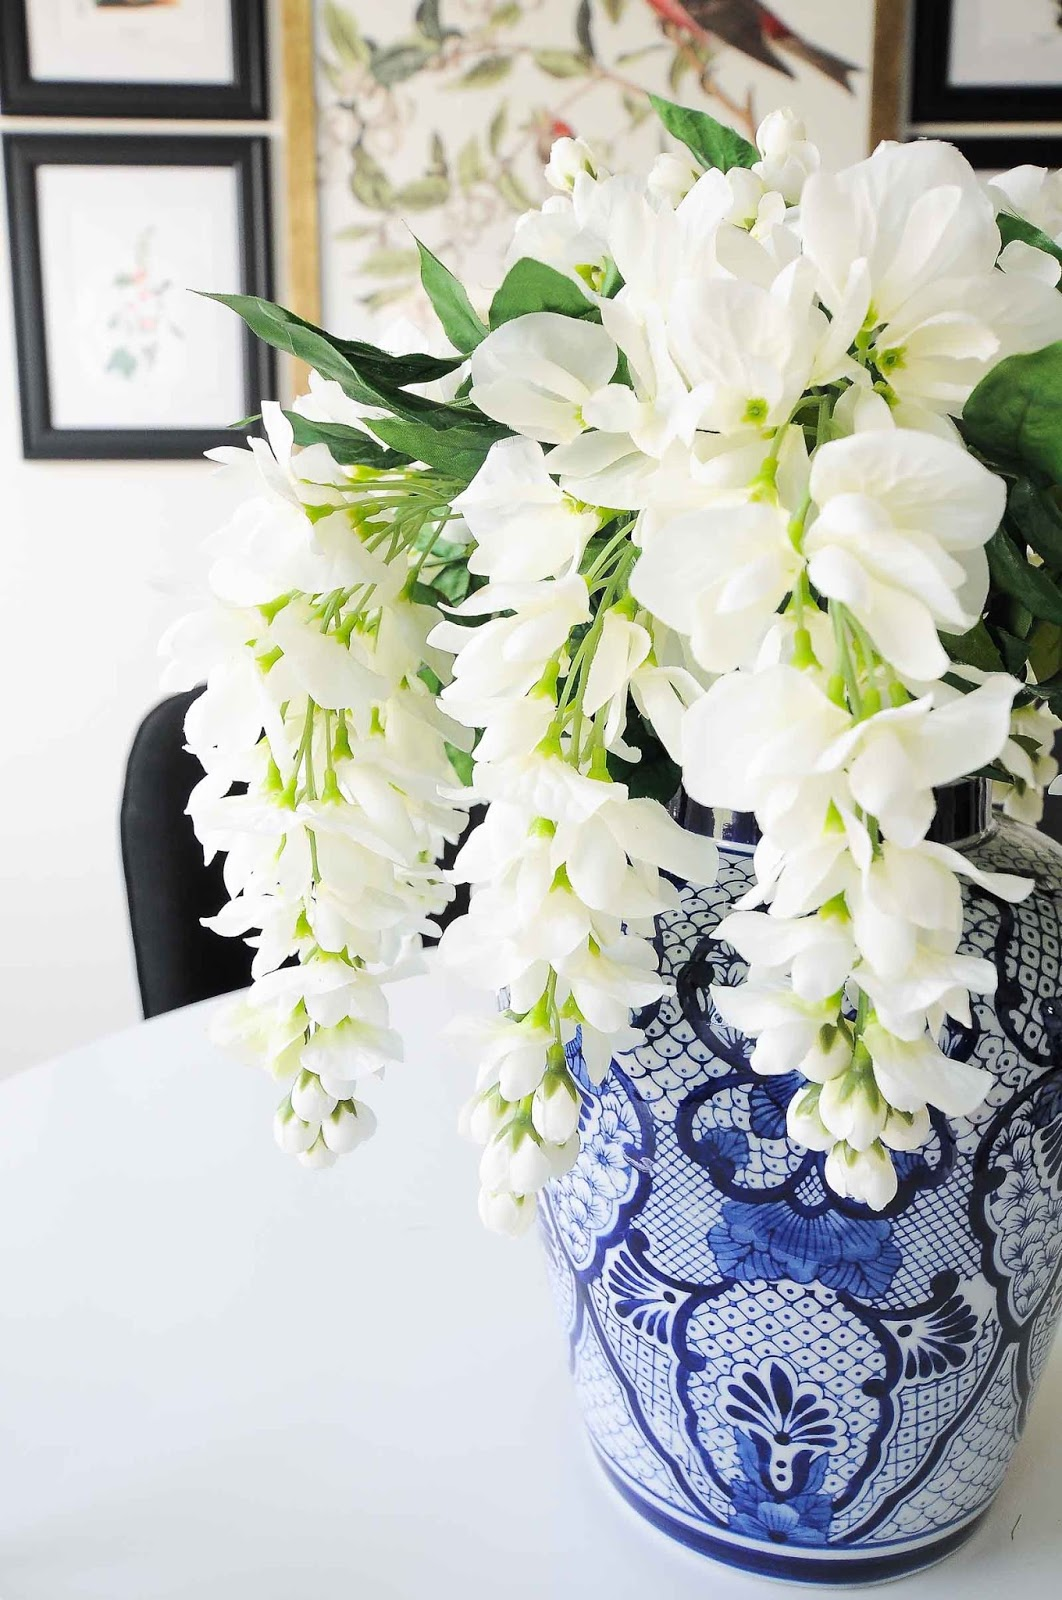 Gorgeous faux wisteria bushes in a ginger jar chinoiserie vase on a dining table.